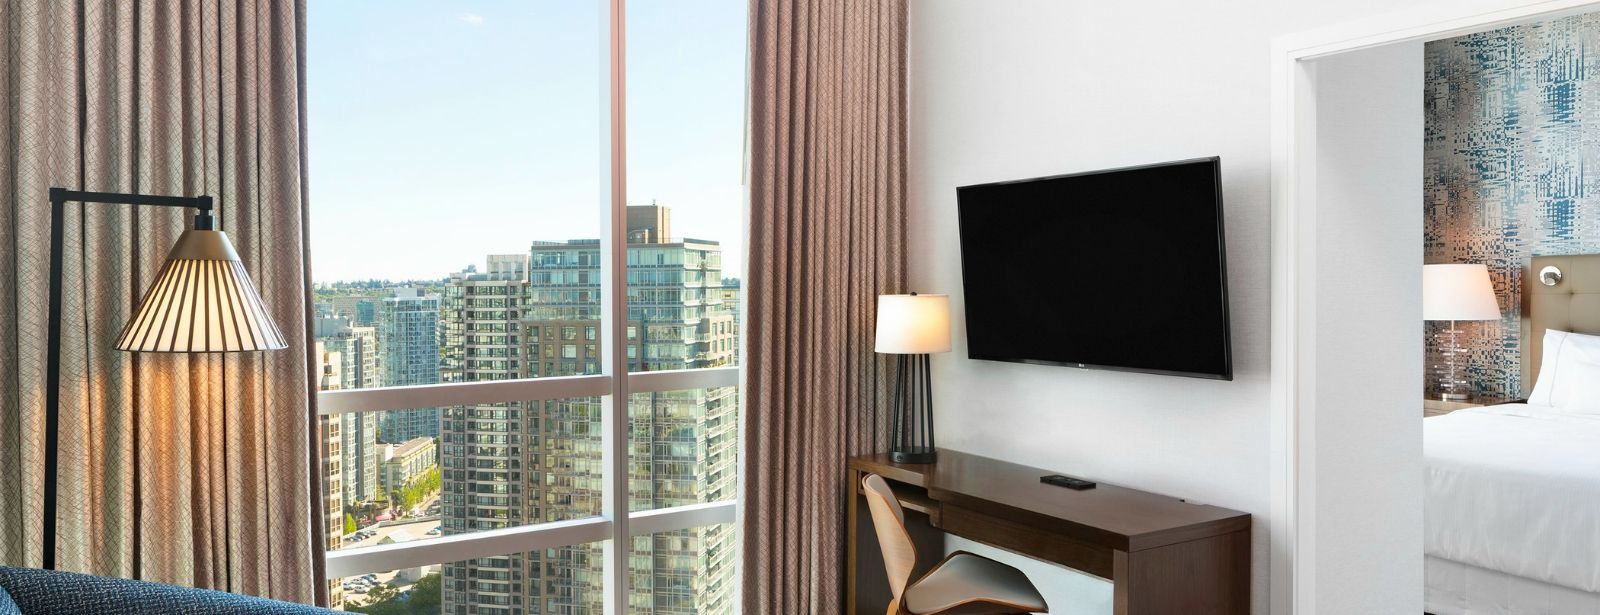 The Westin Grand, Vancouver - Premier View Suite